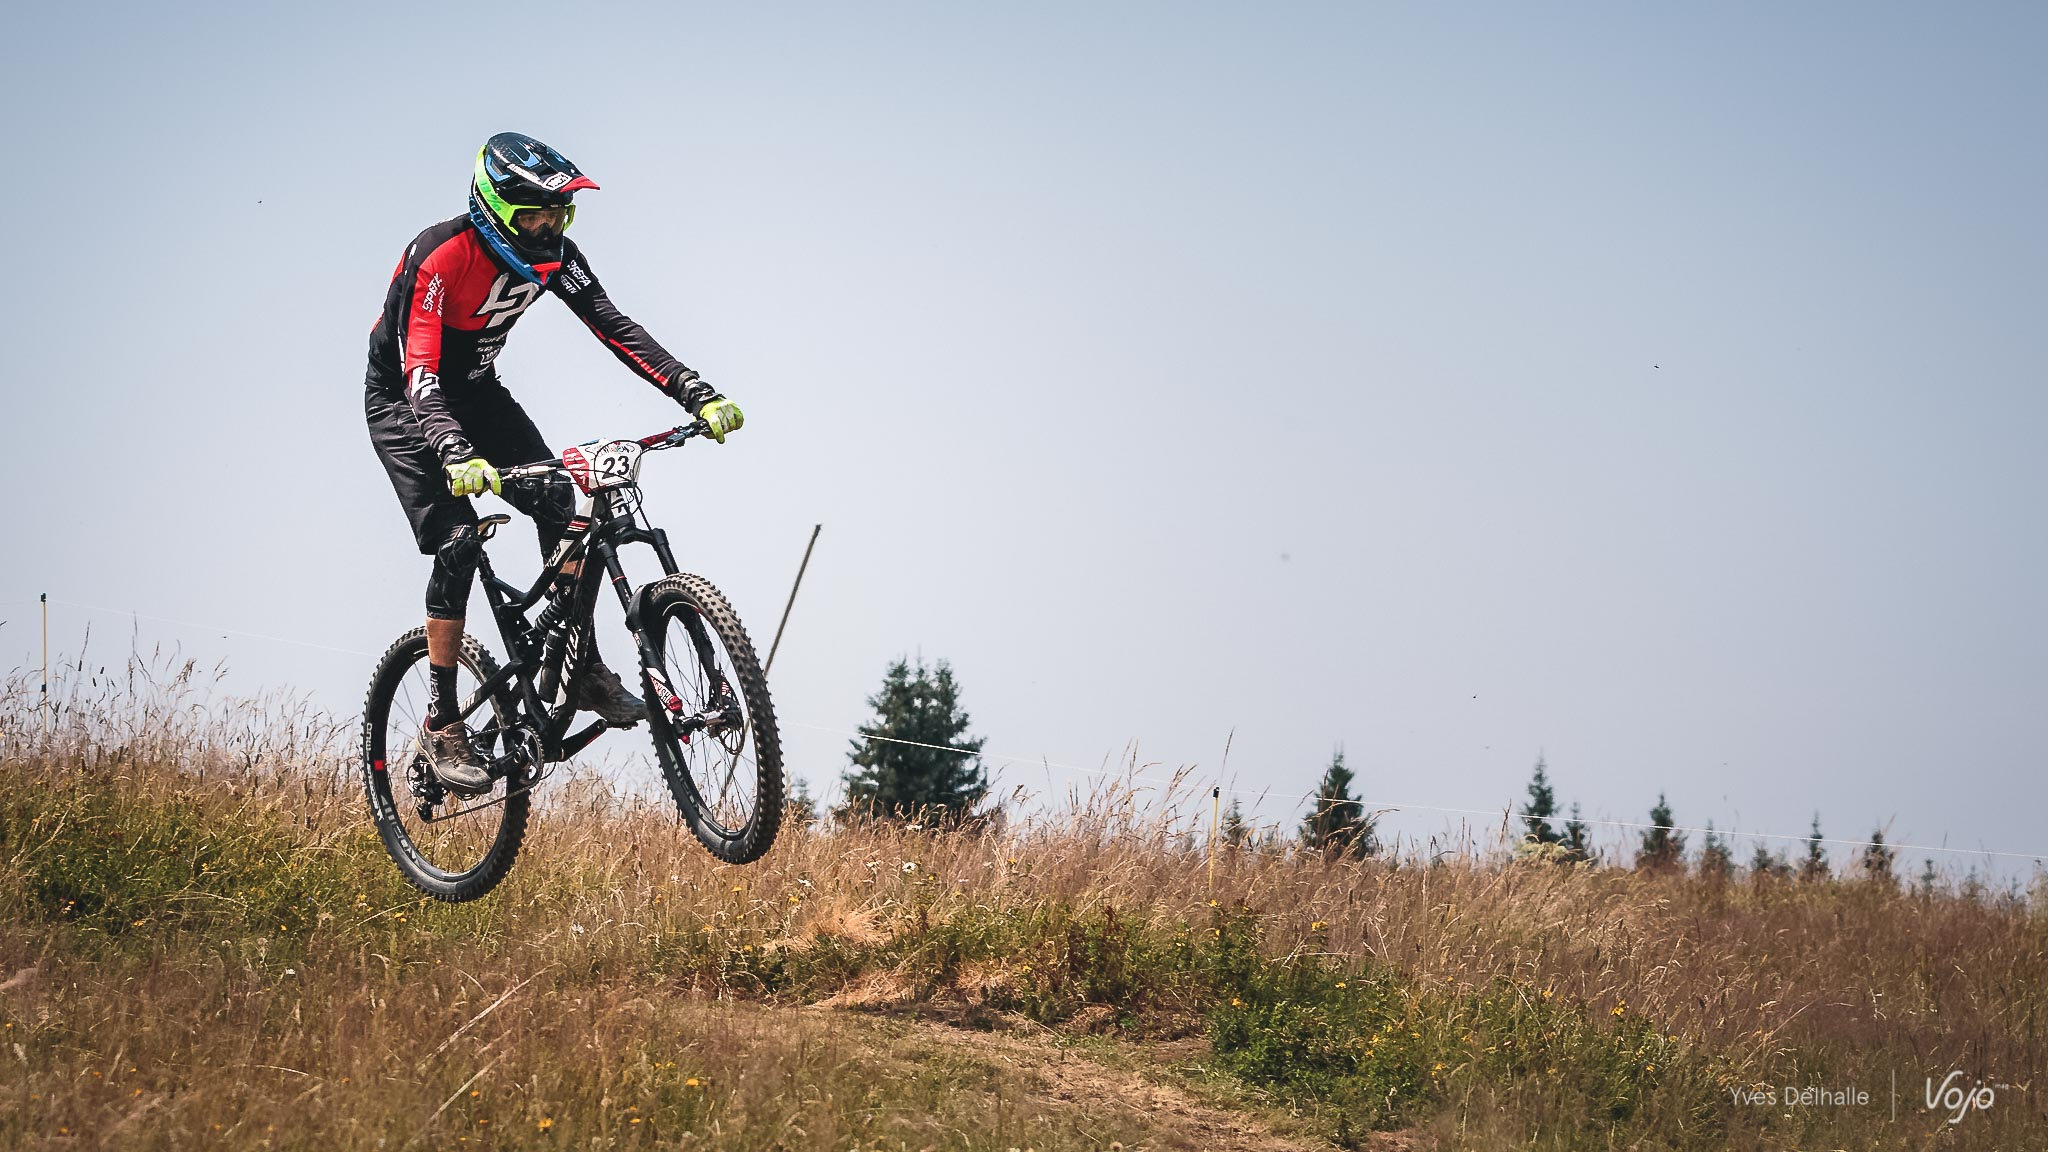 Enduro_World-Series_Samoens_Copyright_Vojomag_YDelhalle-31